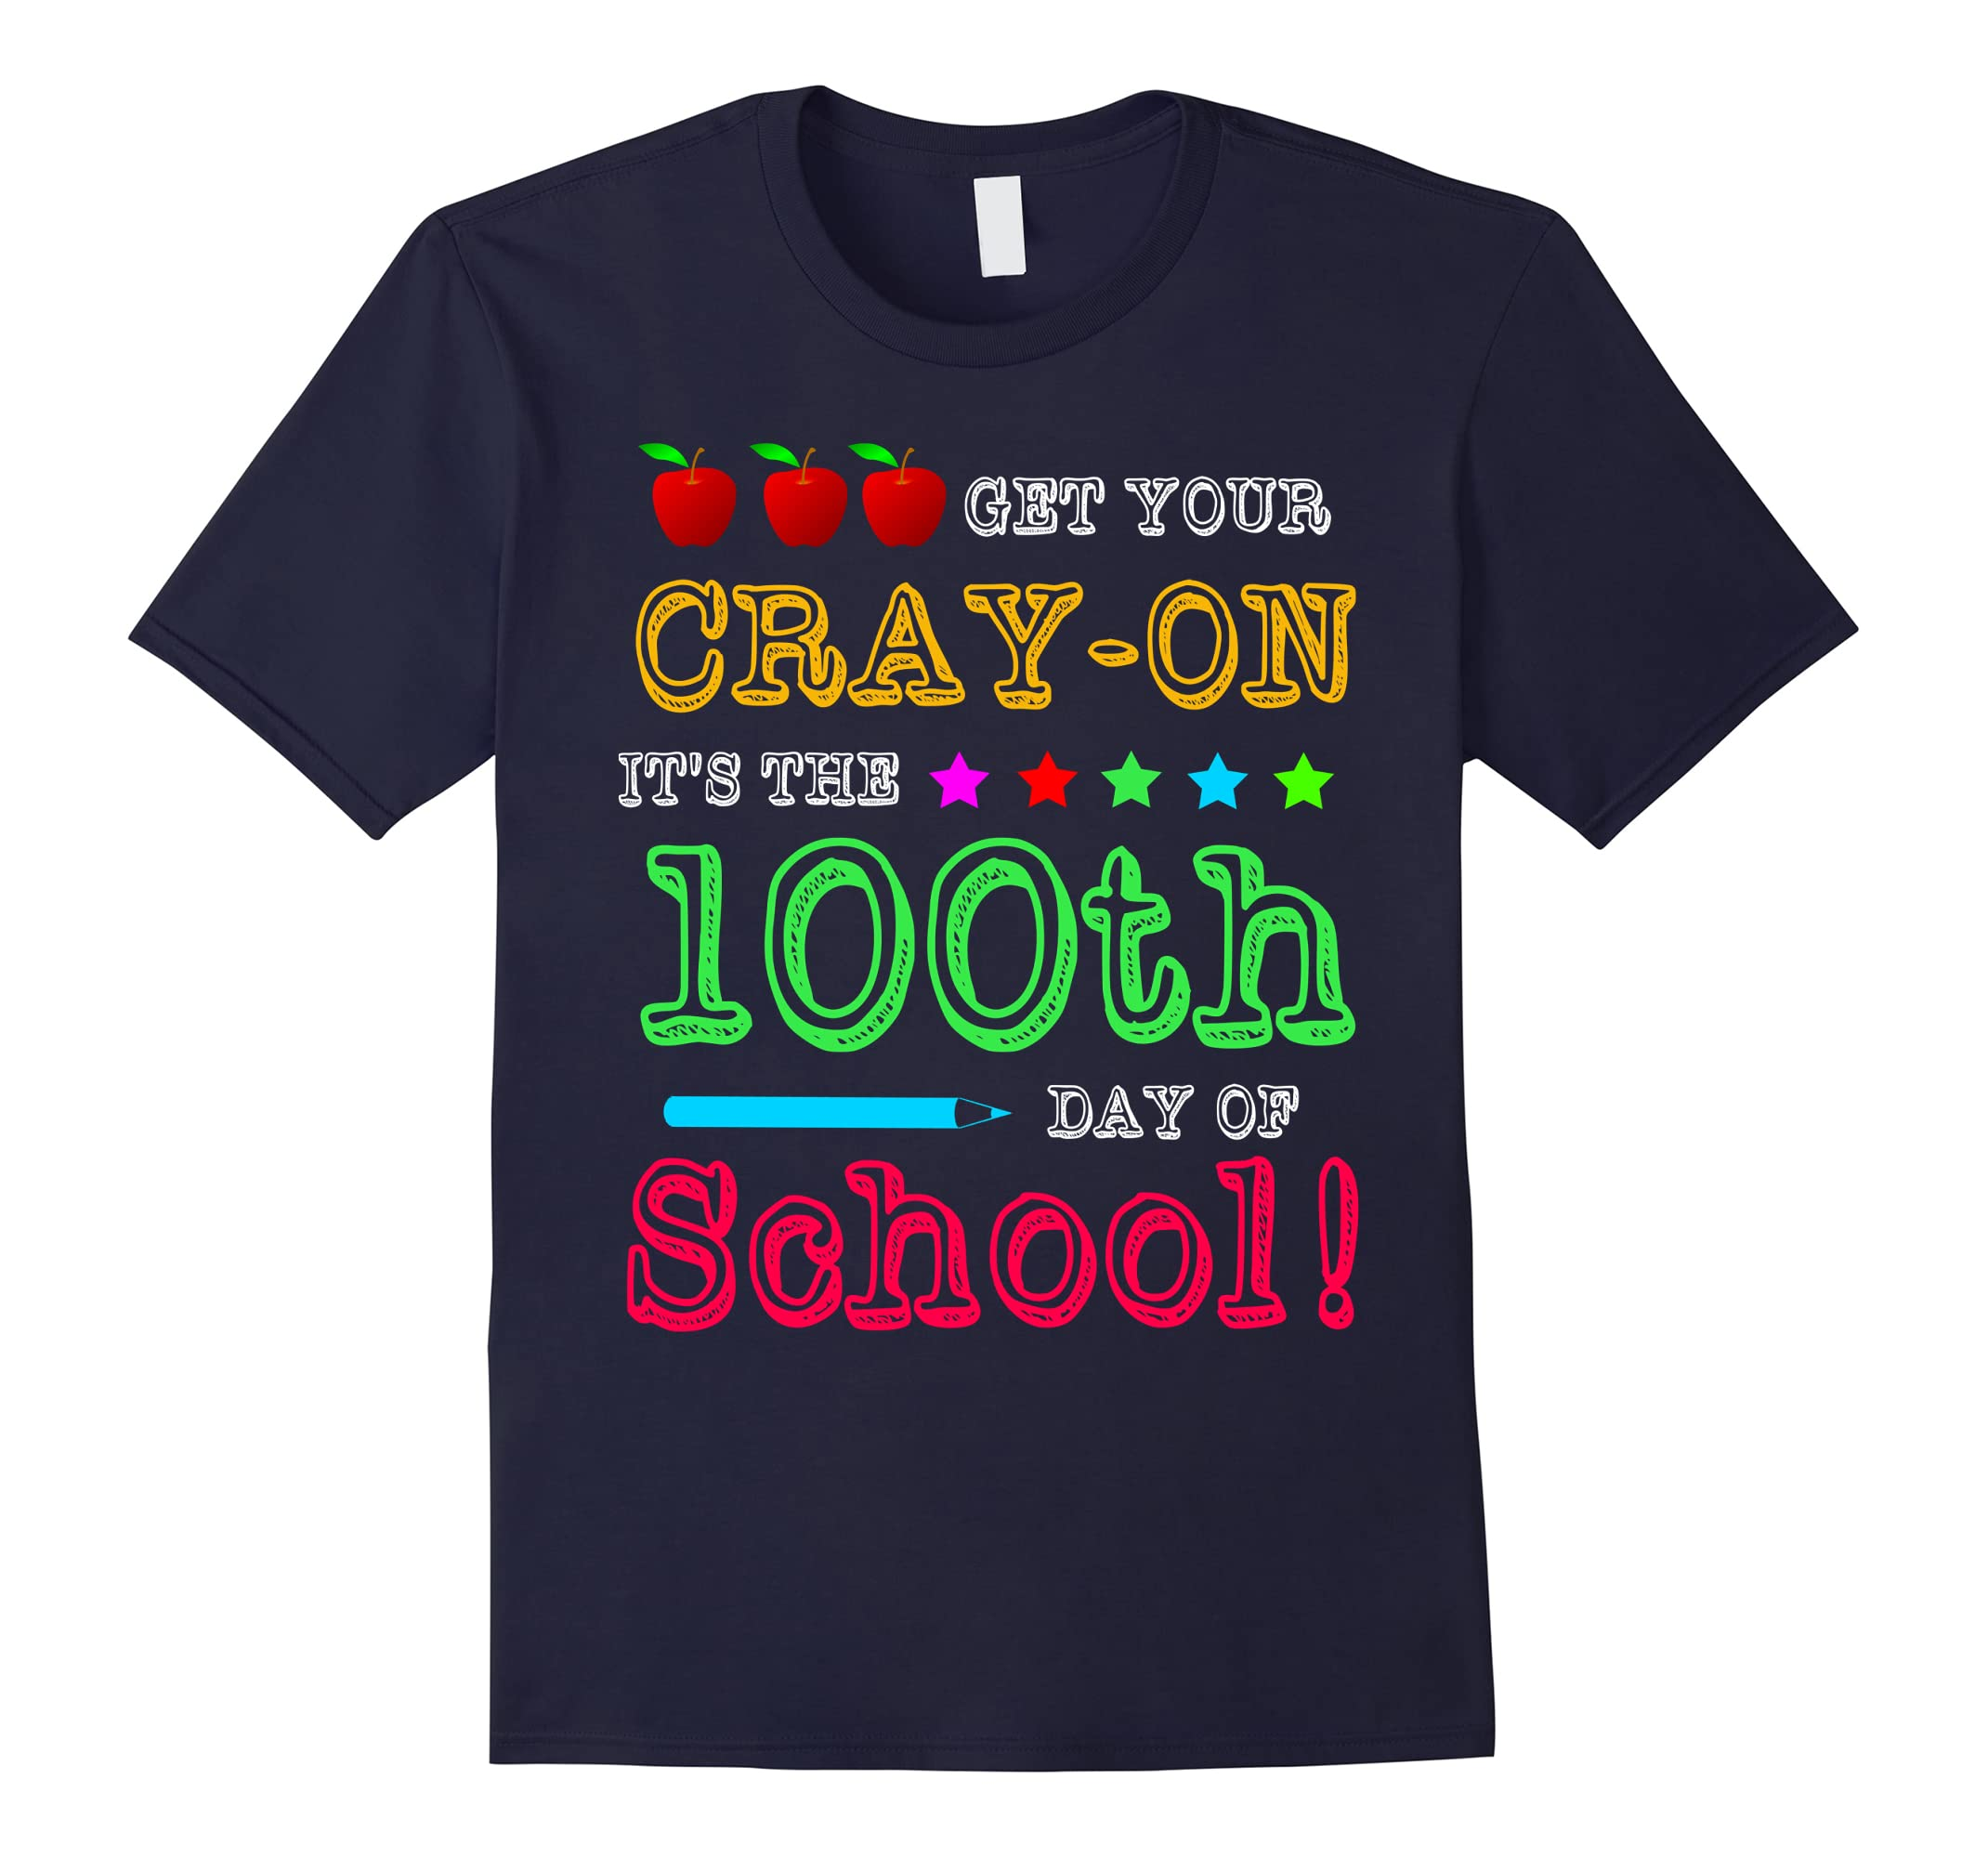 100th Day of School, Get Your Cray-on T-shirt-ah my shirt one gift